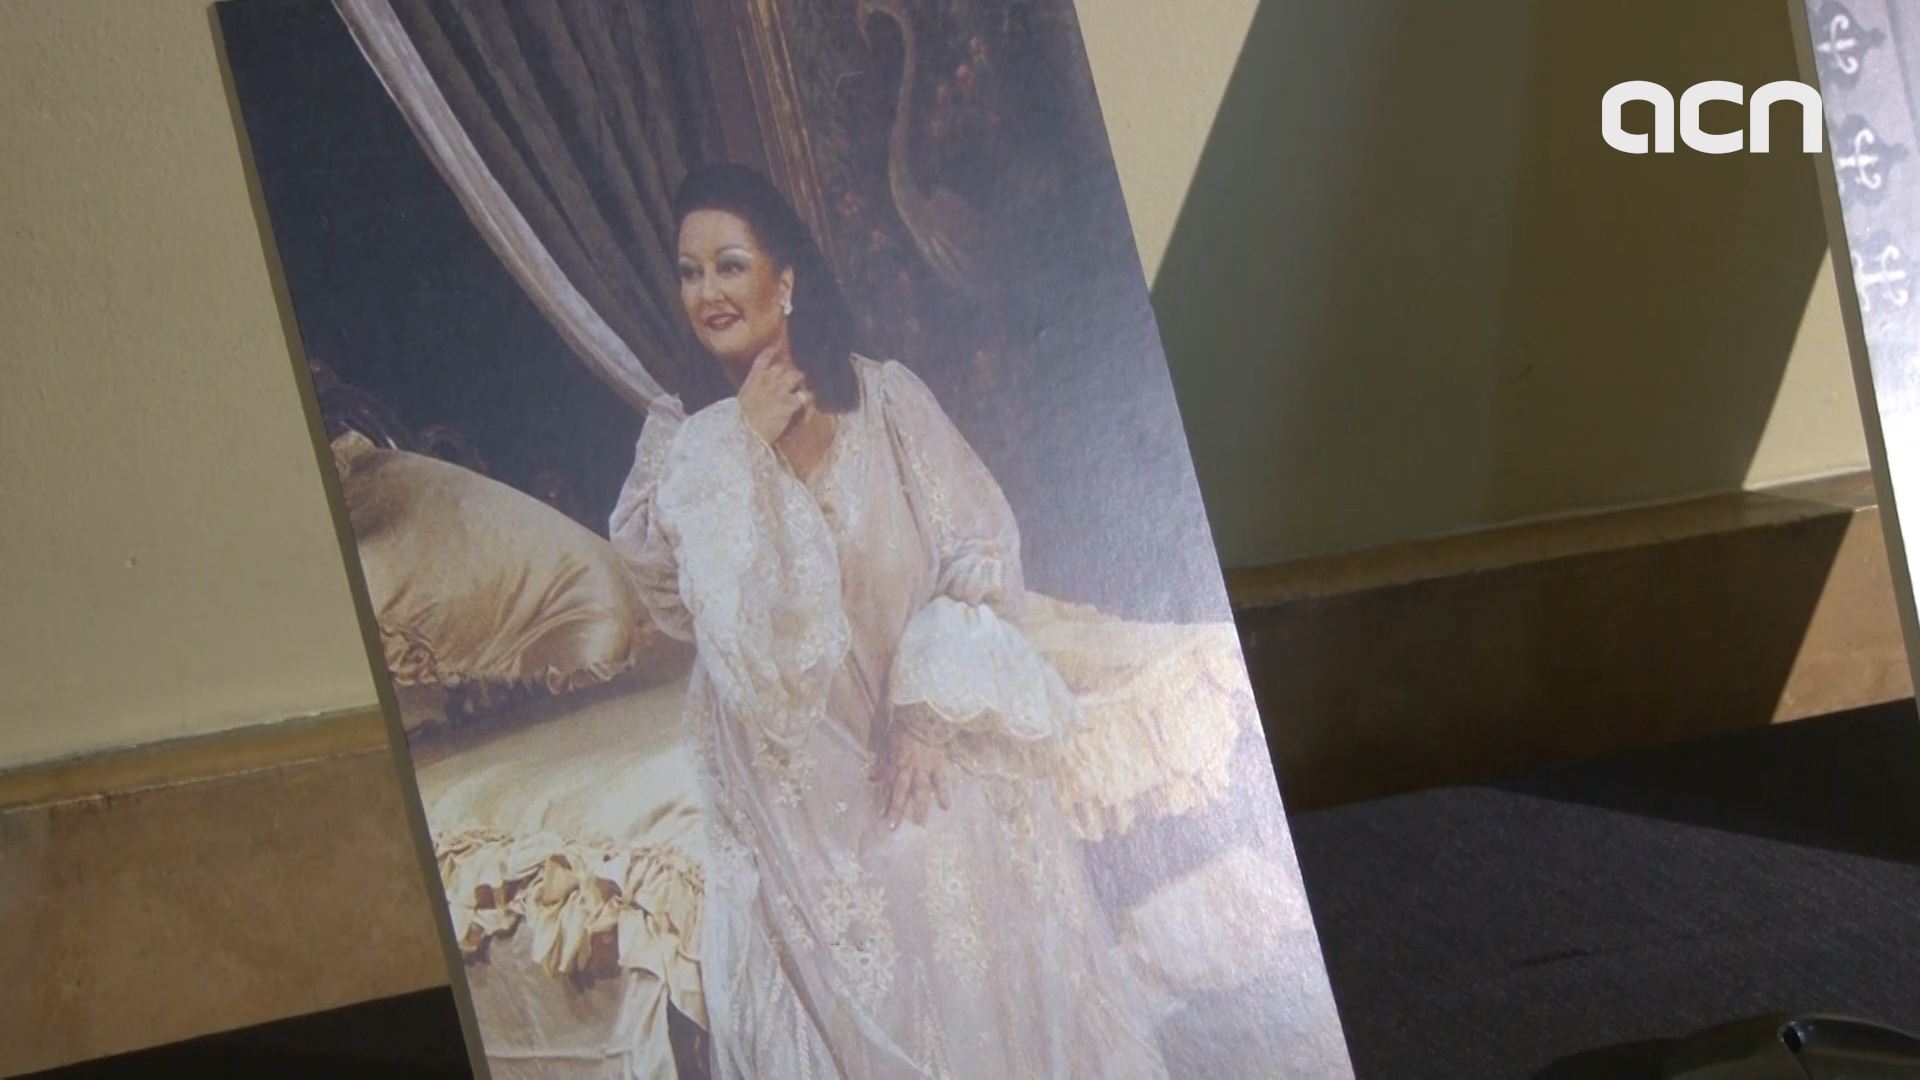 Montserrat Caballé's voice played in soprano's funeral